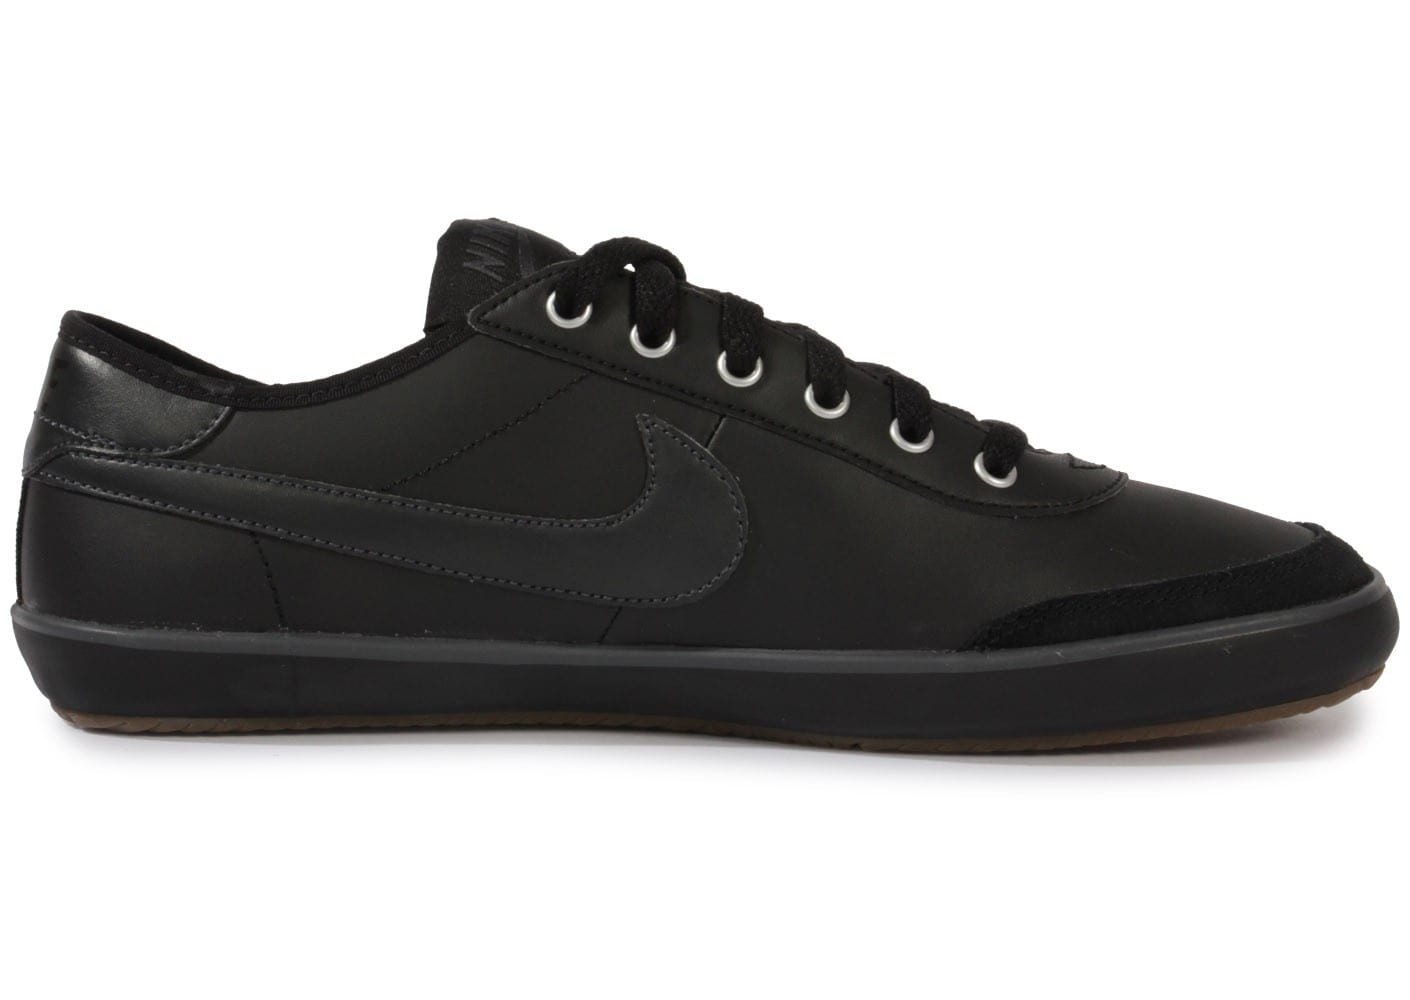 nike sweeper noire chaussures homme chausport. Black Bedroom Furniture Sets. Home Design Ideas